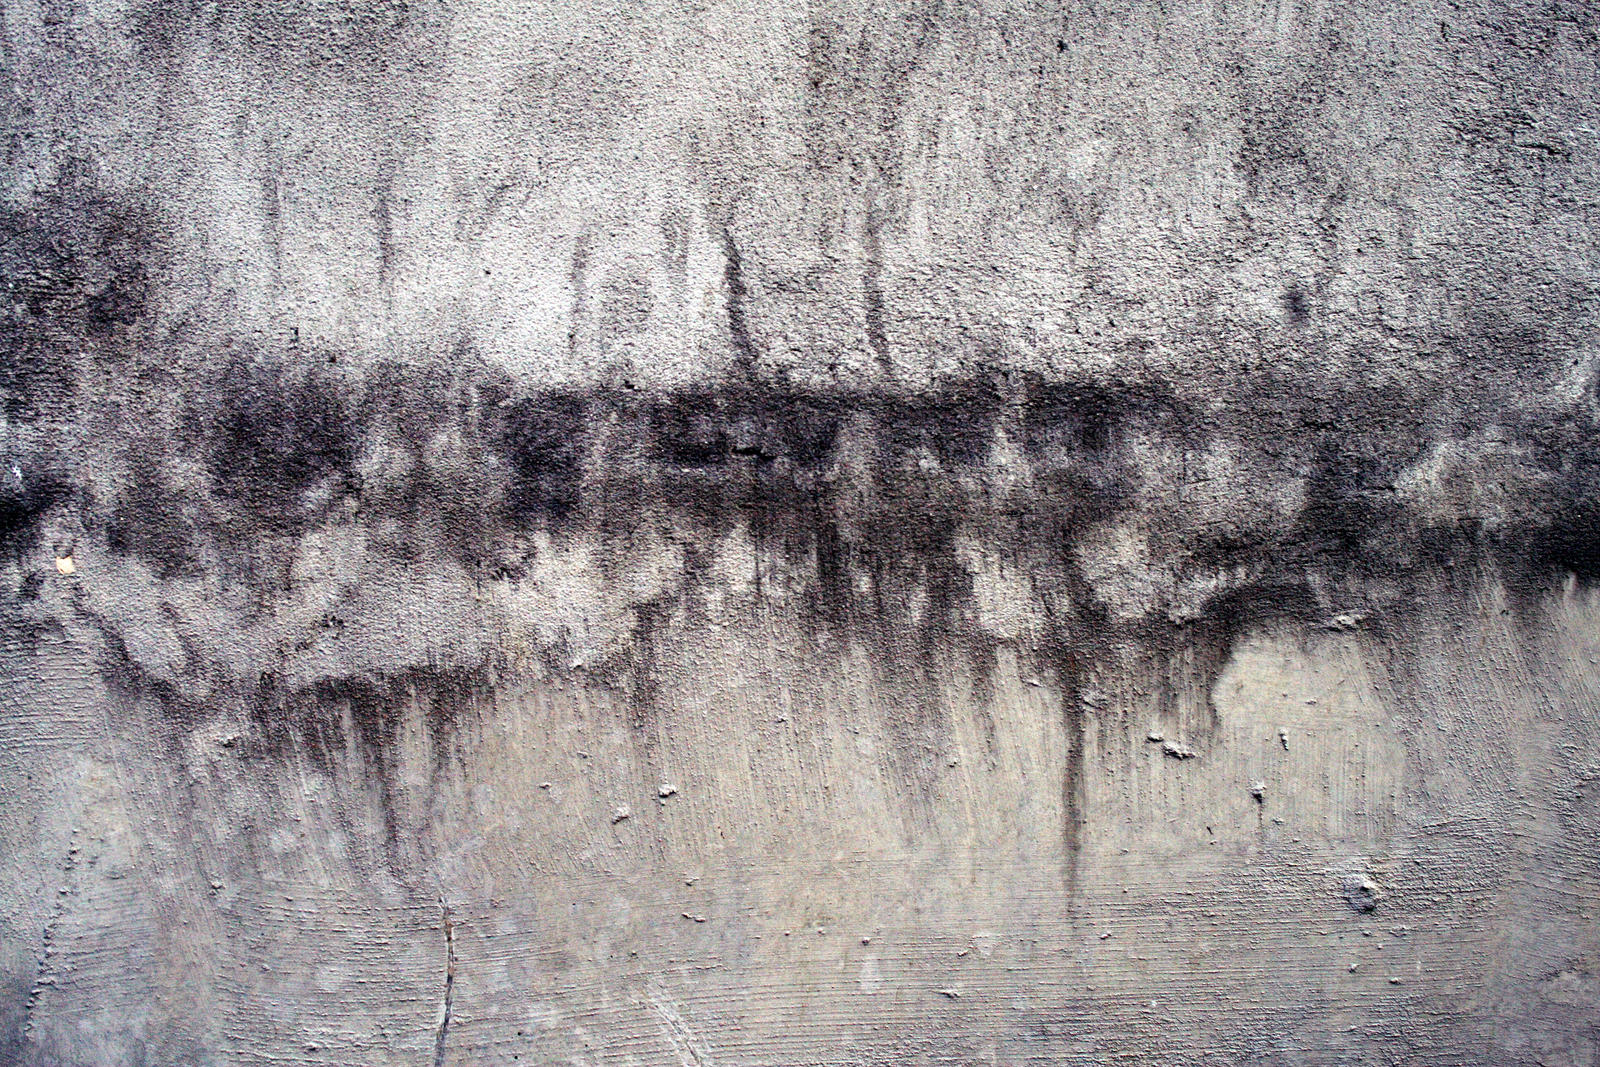 Grungy Landscape on Concrete by mercurycode